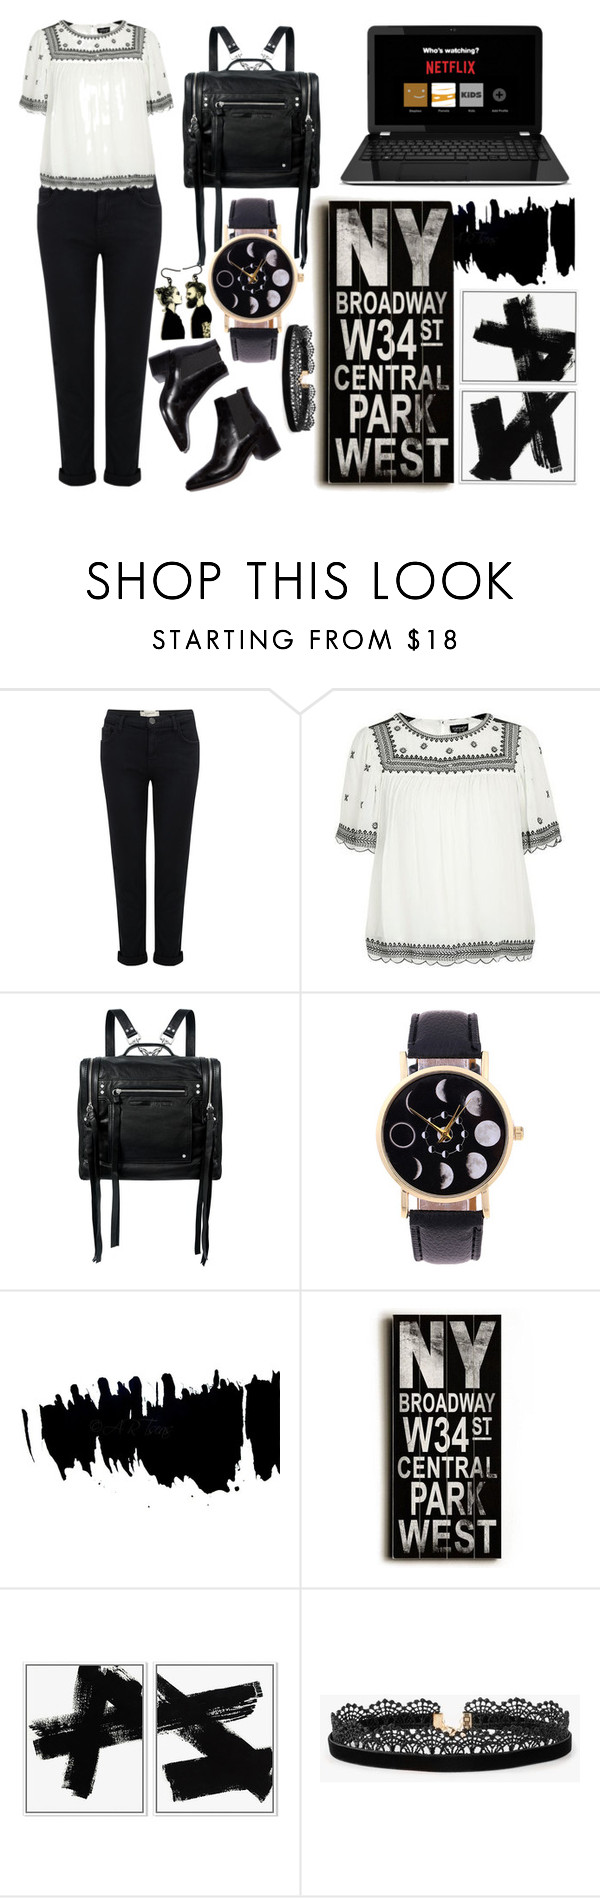 """""""black n white"""" by akshera ❤ liked on Polyvore featuring Current/Elliott, Topshop, McQ by Alexander McQueen, Home Decorators Collection, Azalea and blackandwhite"""